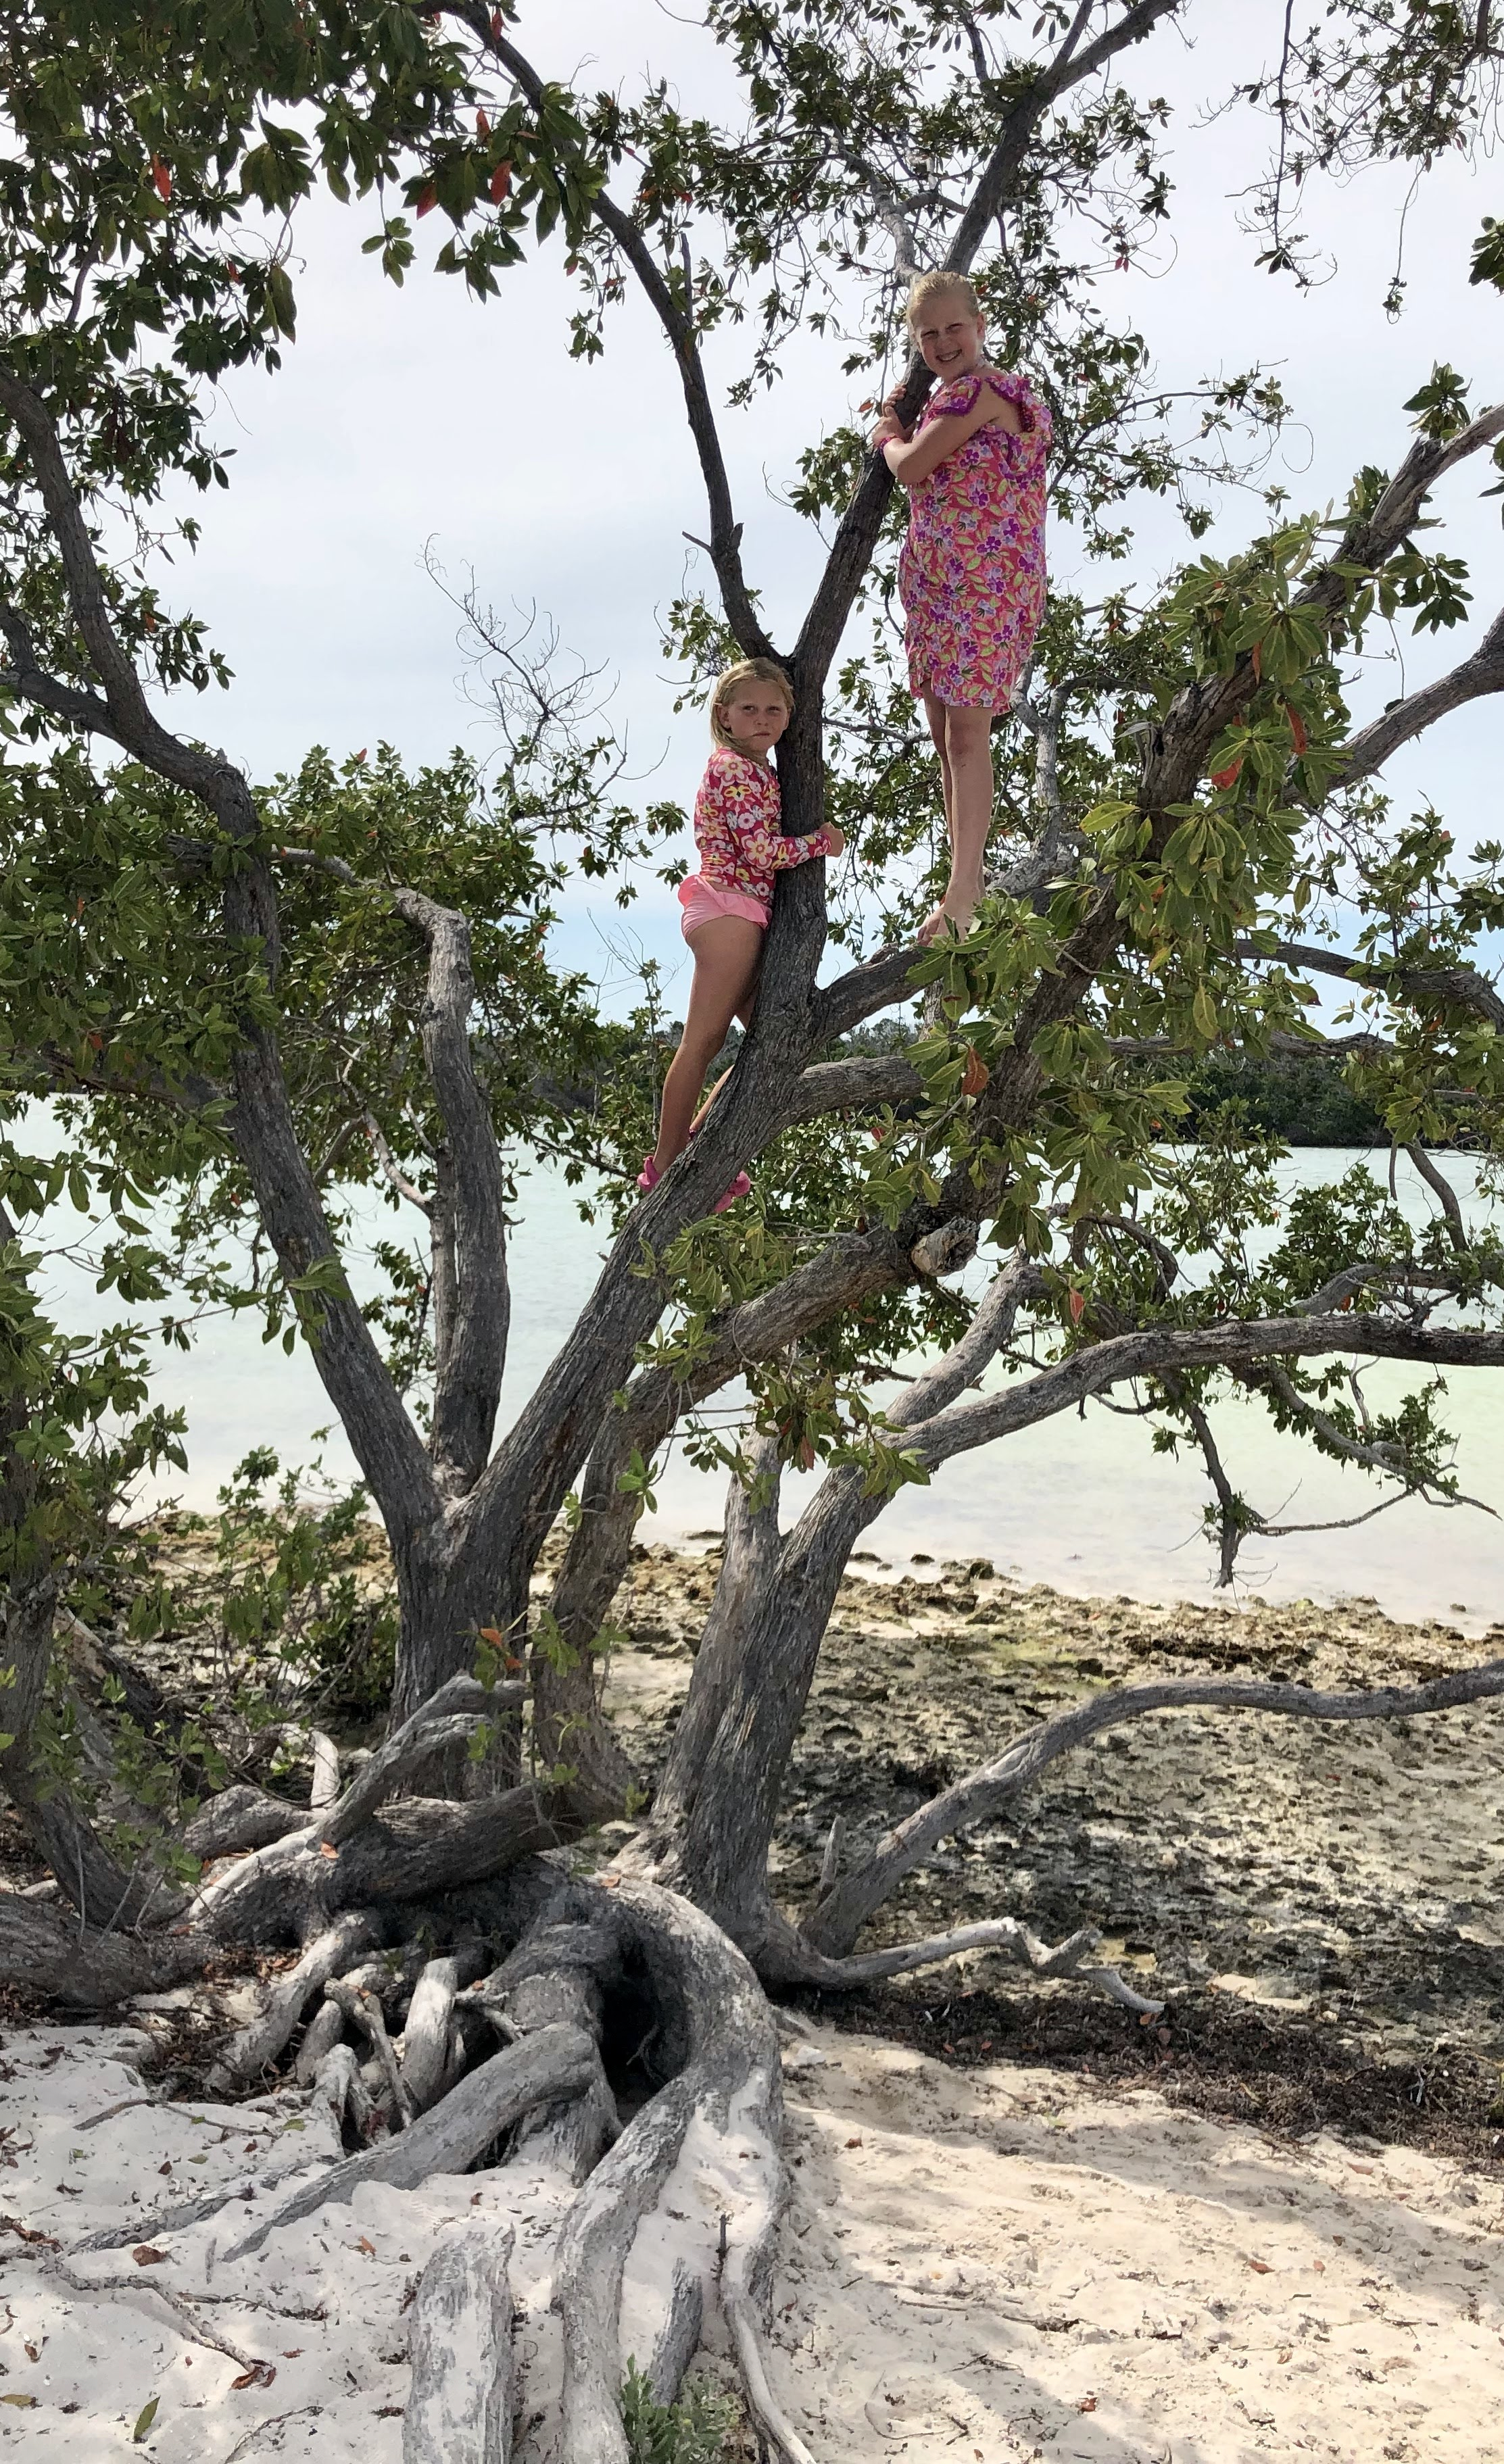 climbing trees at Sombrero Beach